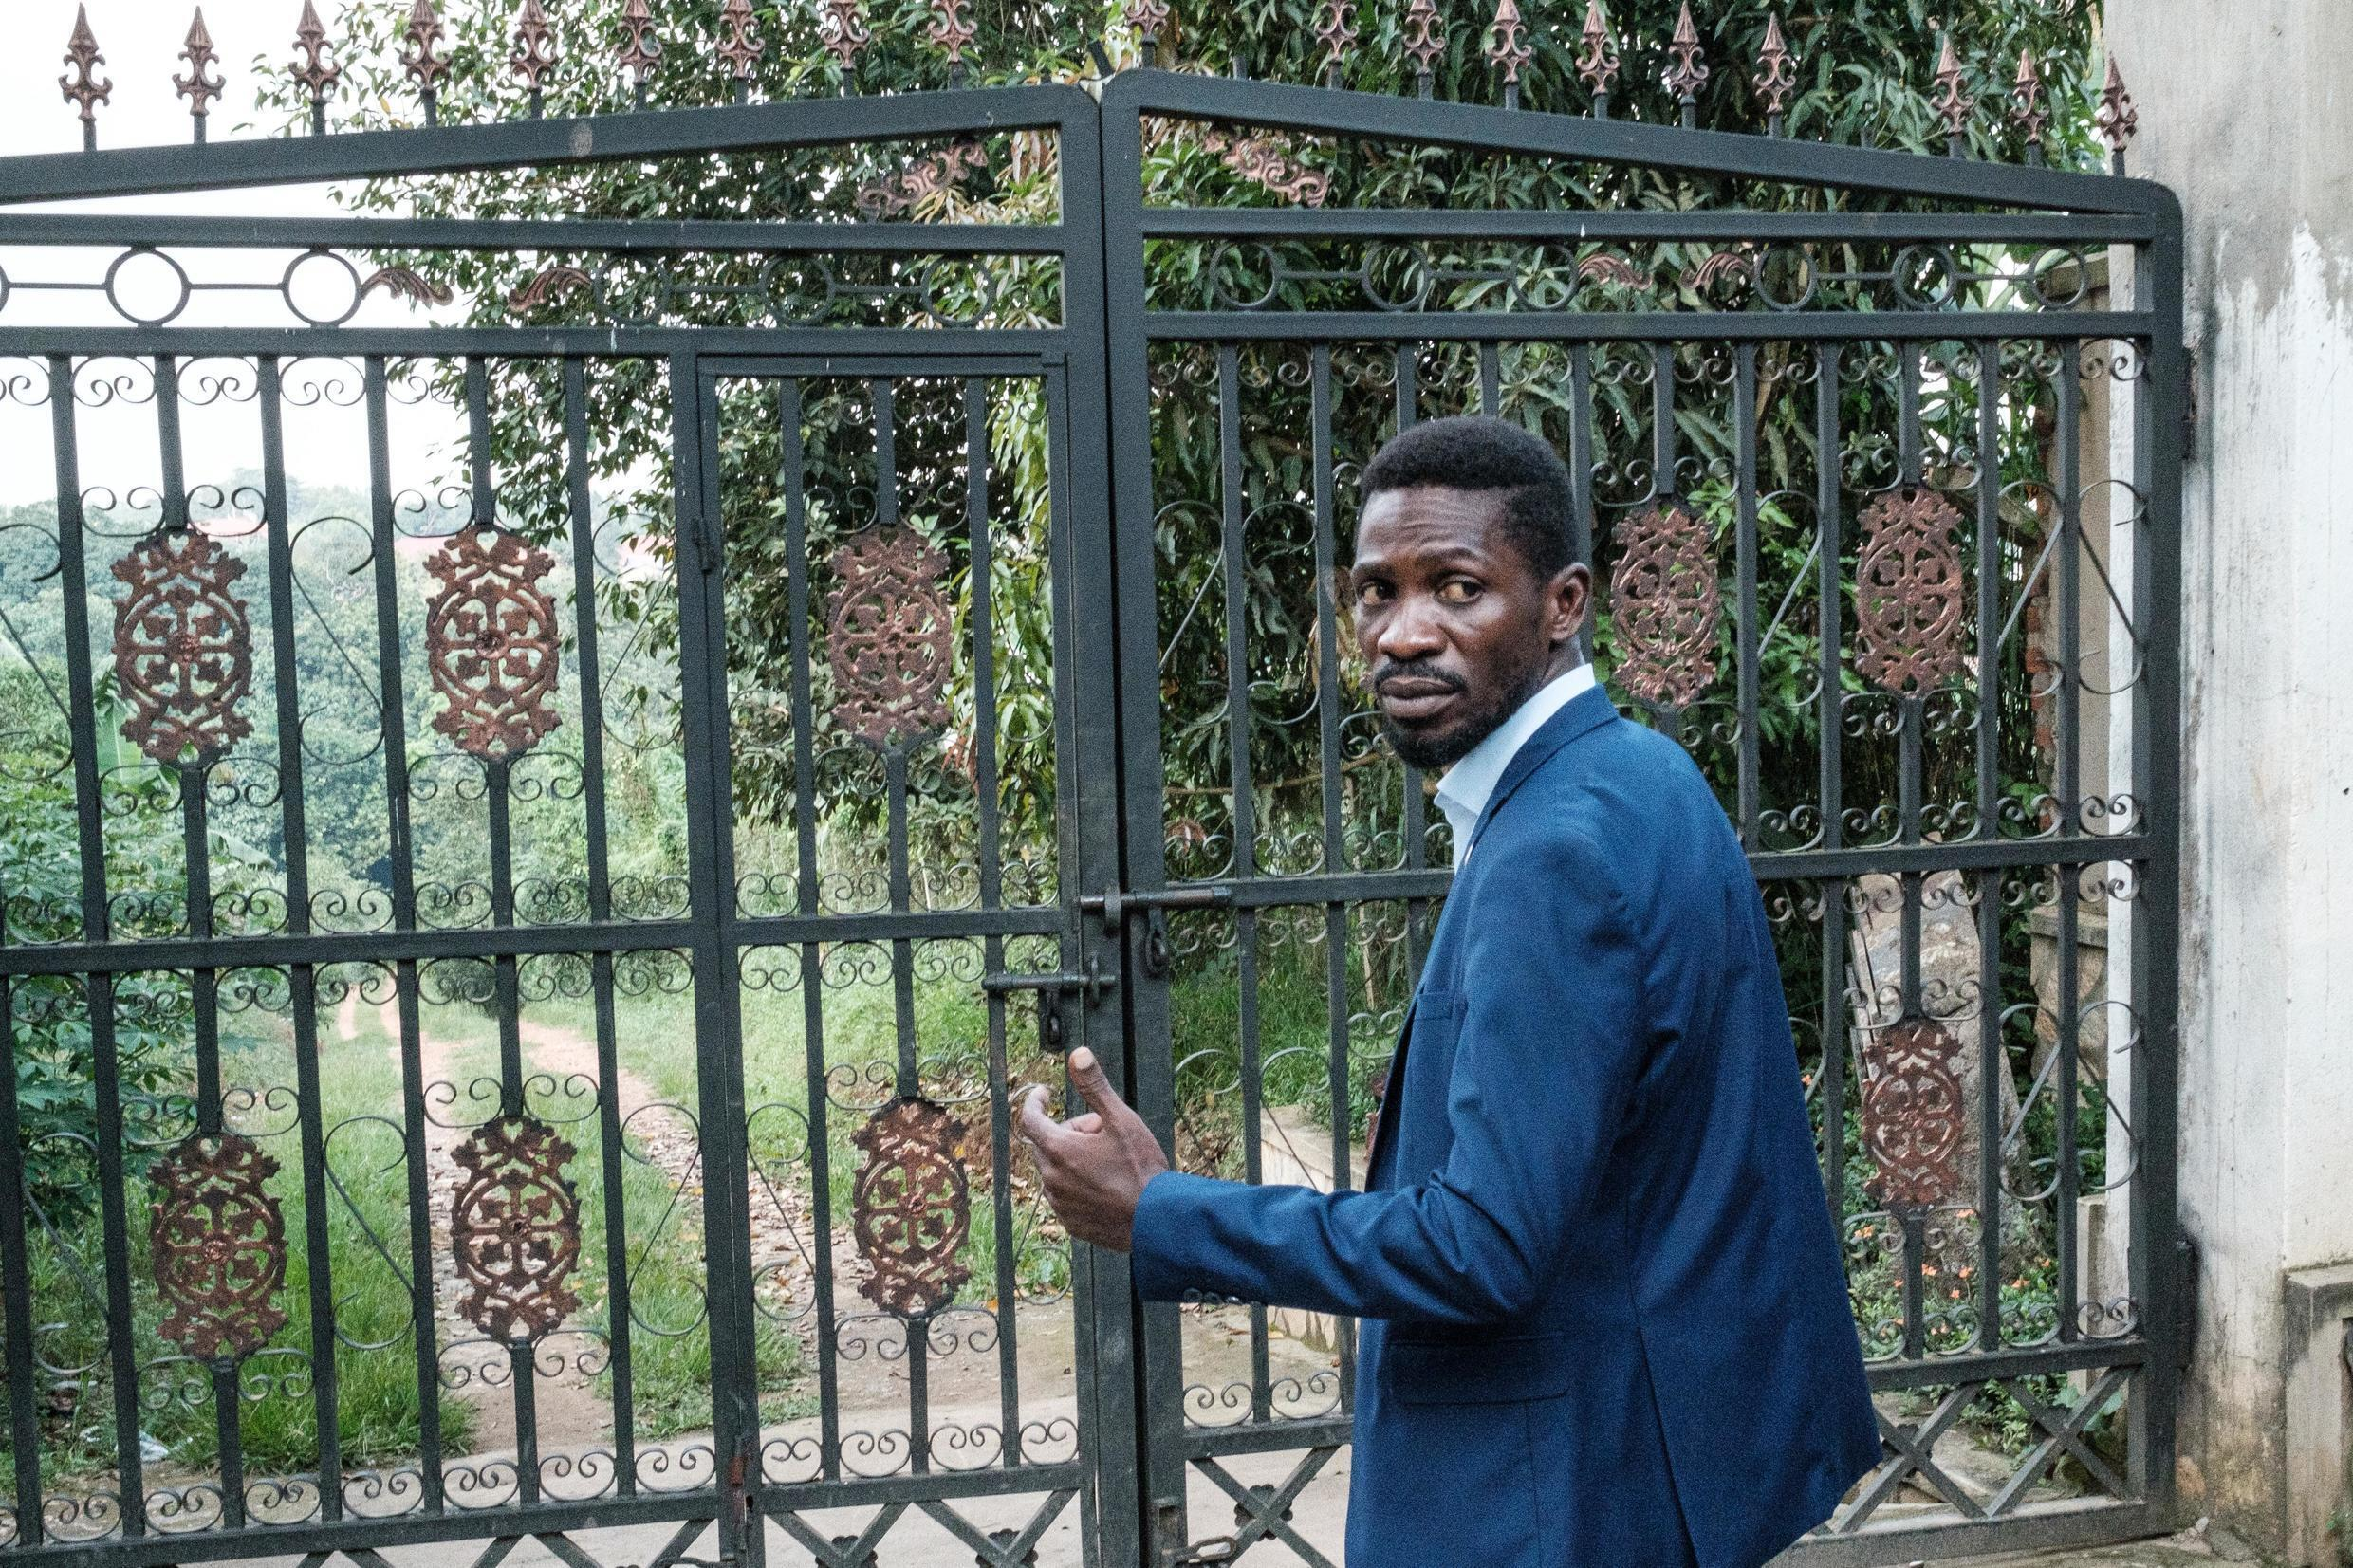 Ugandan opposition leader Bobi Wine at the gate of his home, which soldiers have surrounded after he alleged mass electoral fraud